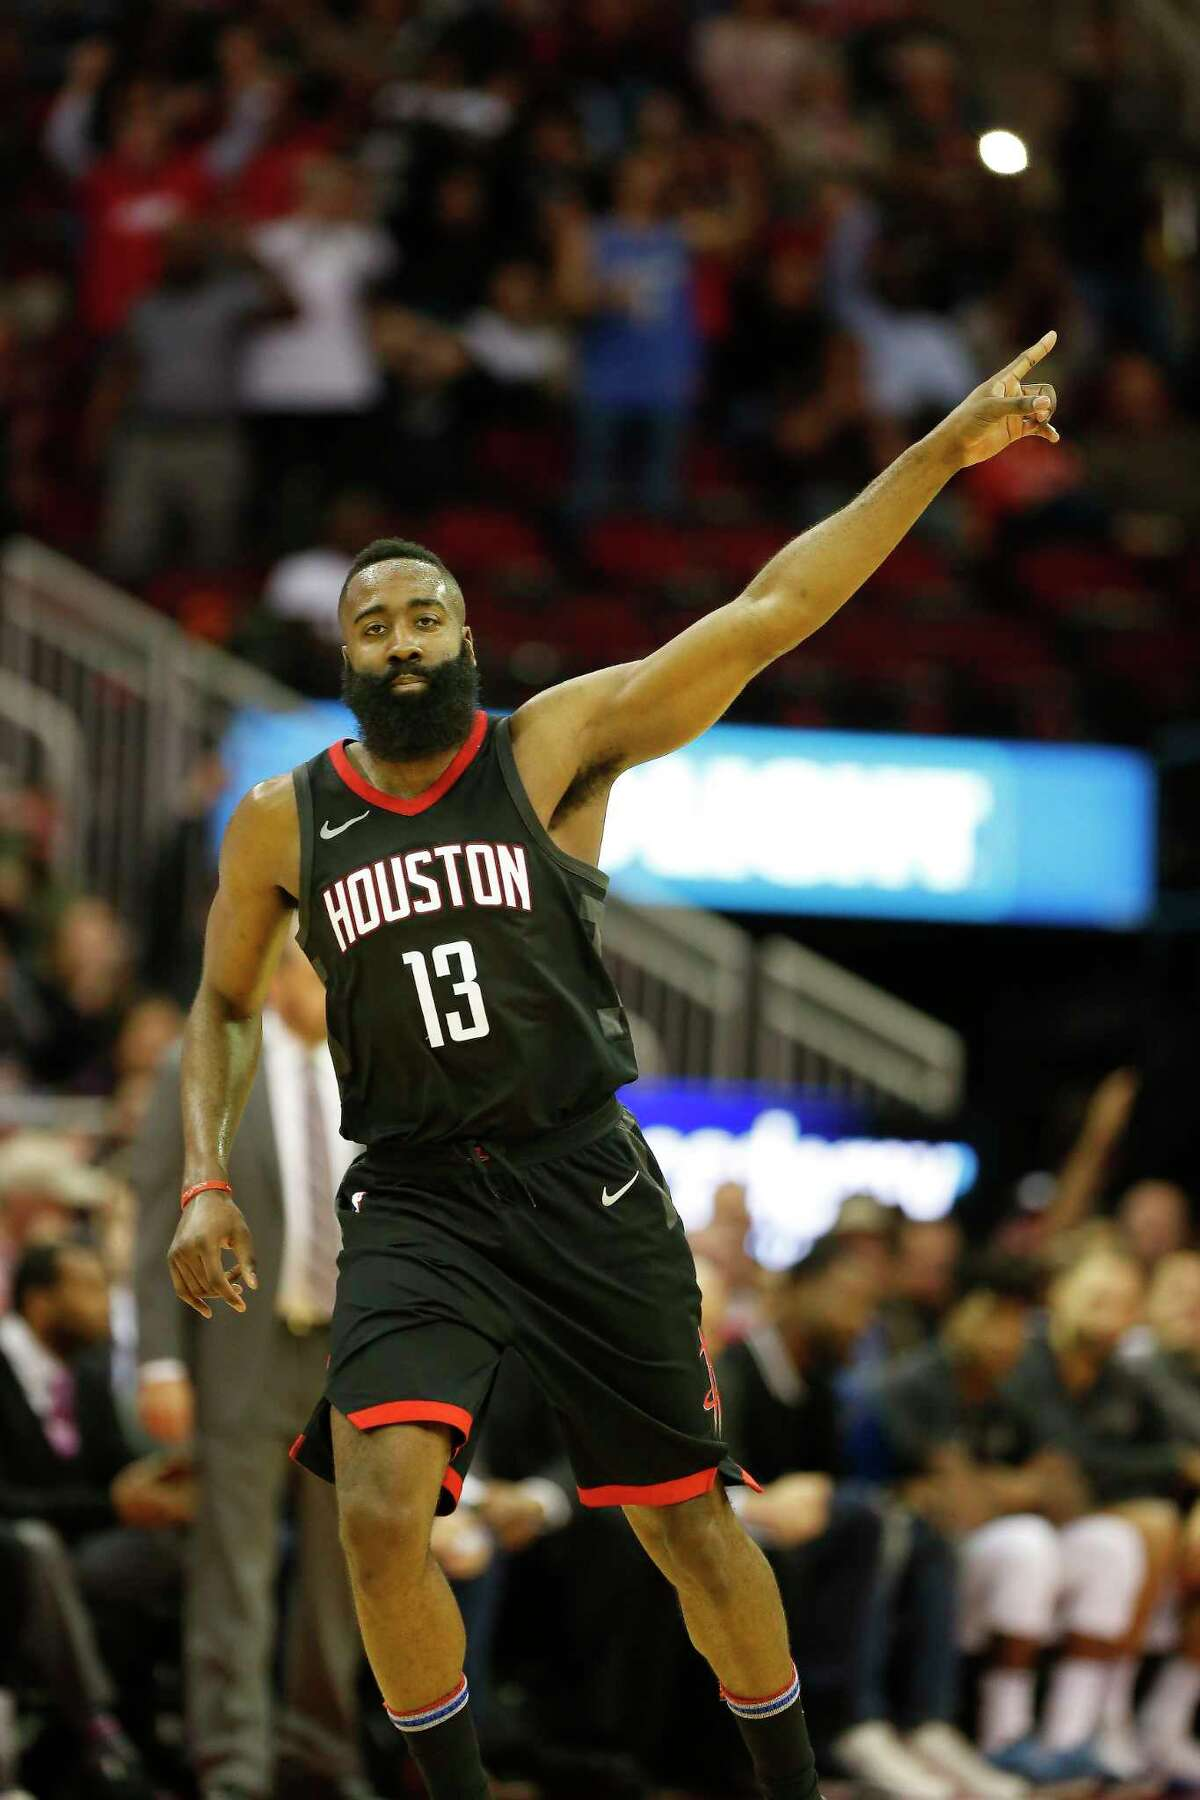 Houston Rockets guard James Harden (13) pointed to the goal after he scored in the 4th-quarter of an NBA basketball game at Toyota Center on Tuesday, Jan. 30, 2018, in Houston. ( Steve Gonzales / Houston Chronicle )